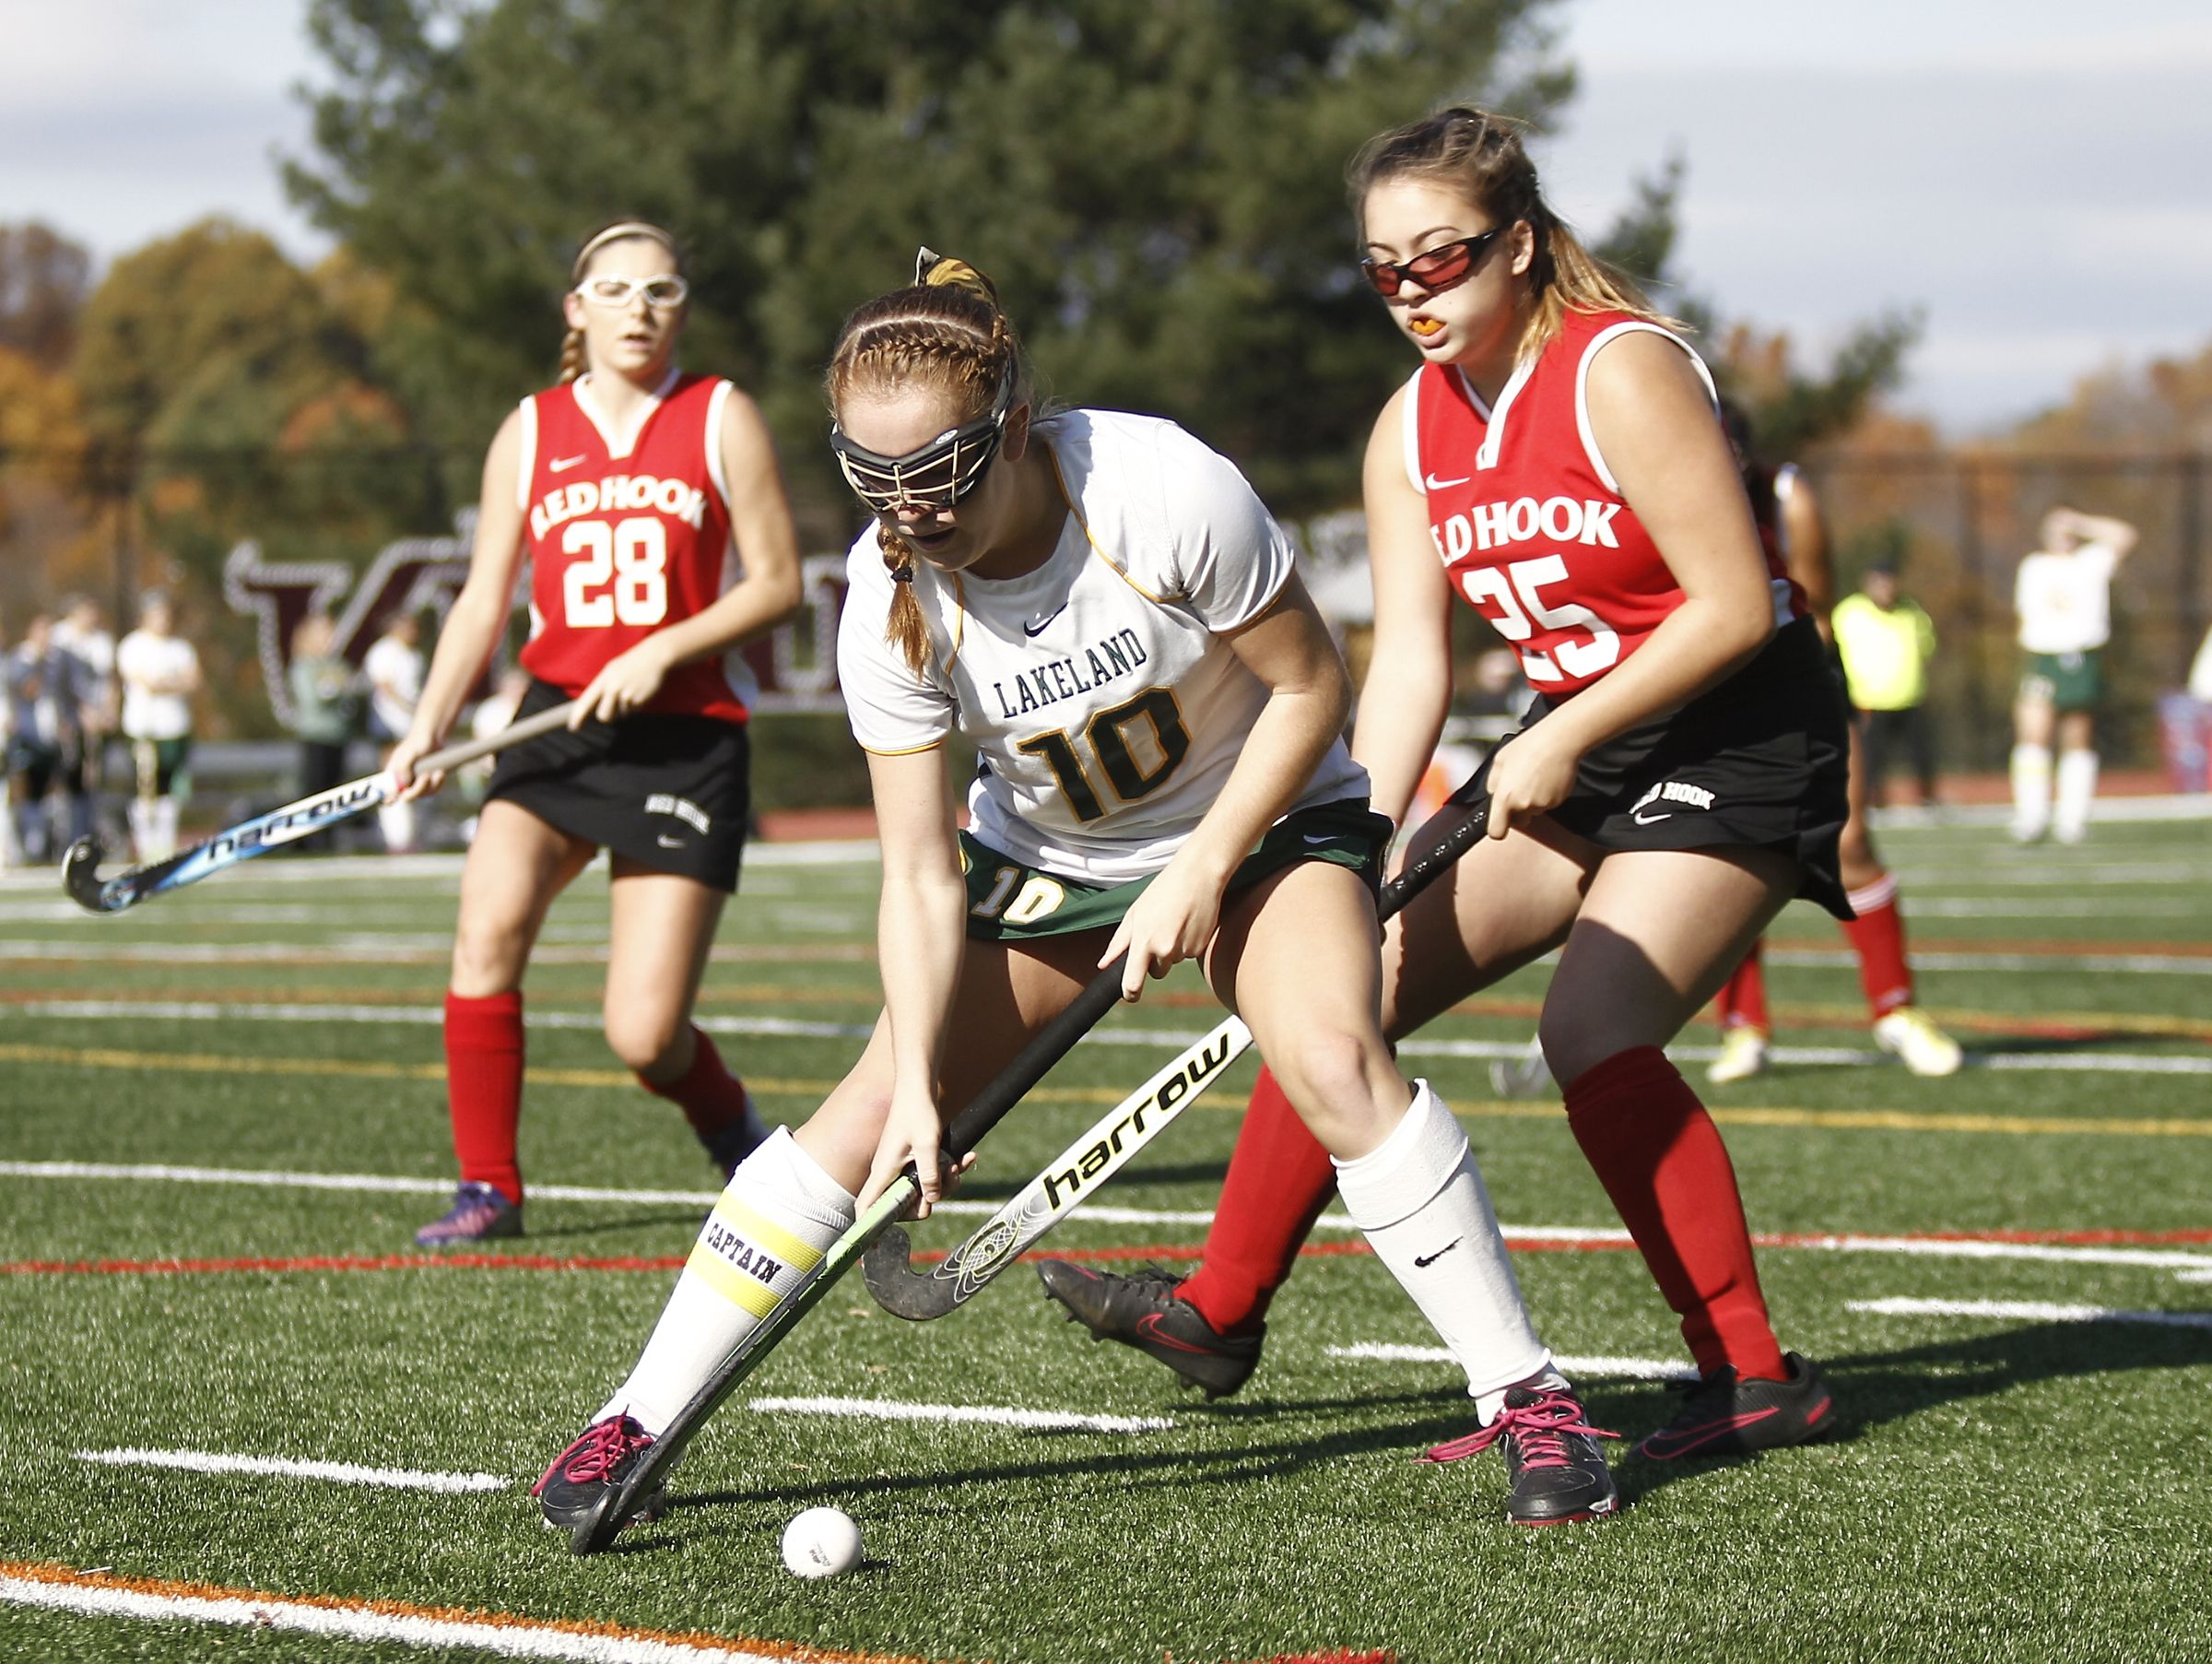 Lakeland's Meghan Fahey (10) controls the ball near the end-line during their 8-0 win over Red Hook in the Class B regional championship field hockey game at Valhalla High School on Saturday, November 5, 2016.